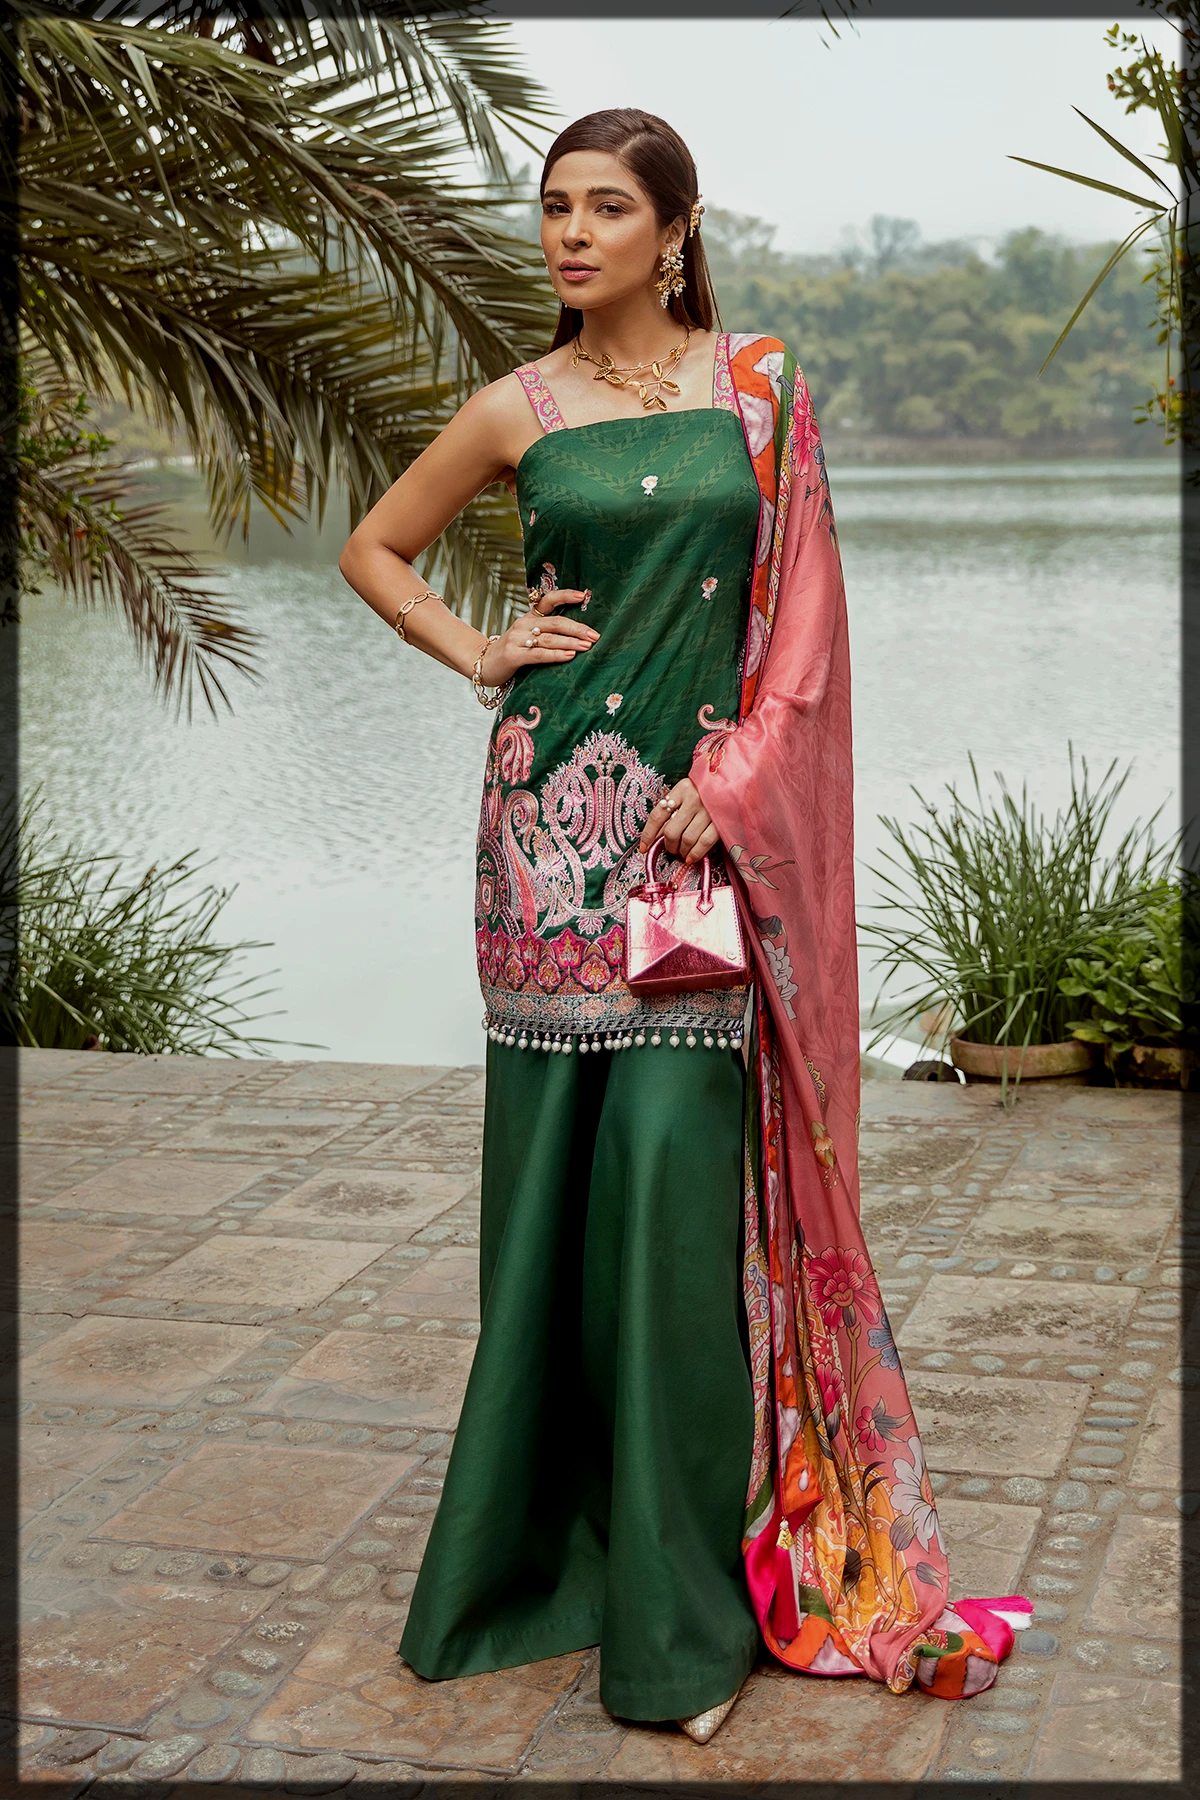 Self Printed Luxury Lawn Suit for Women